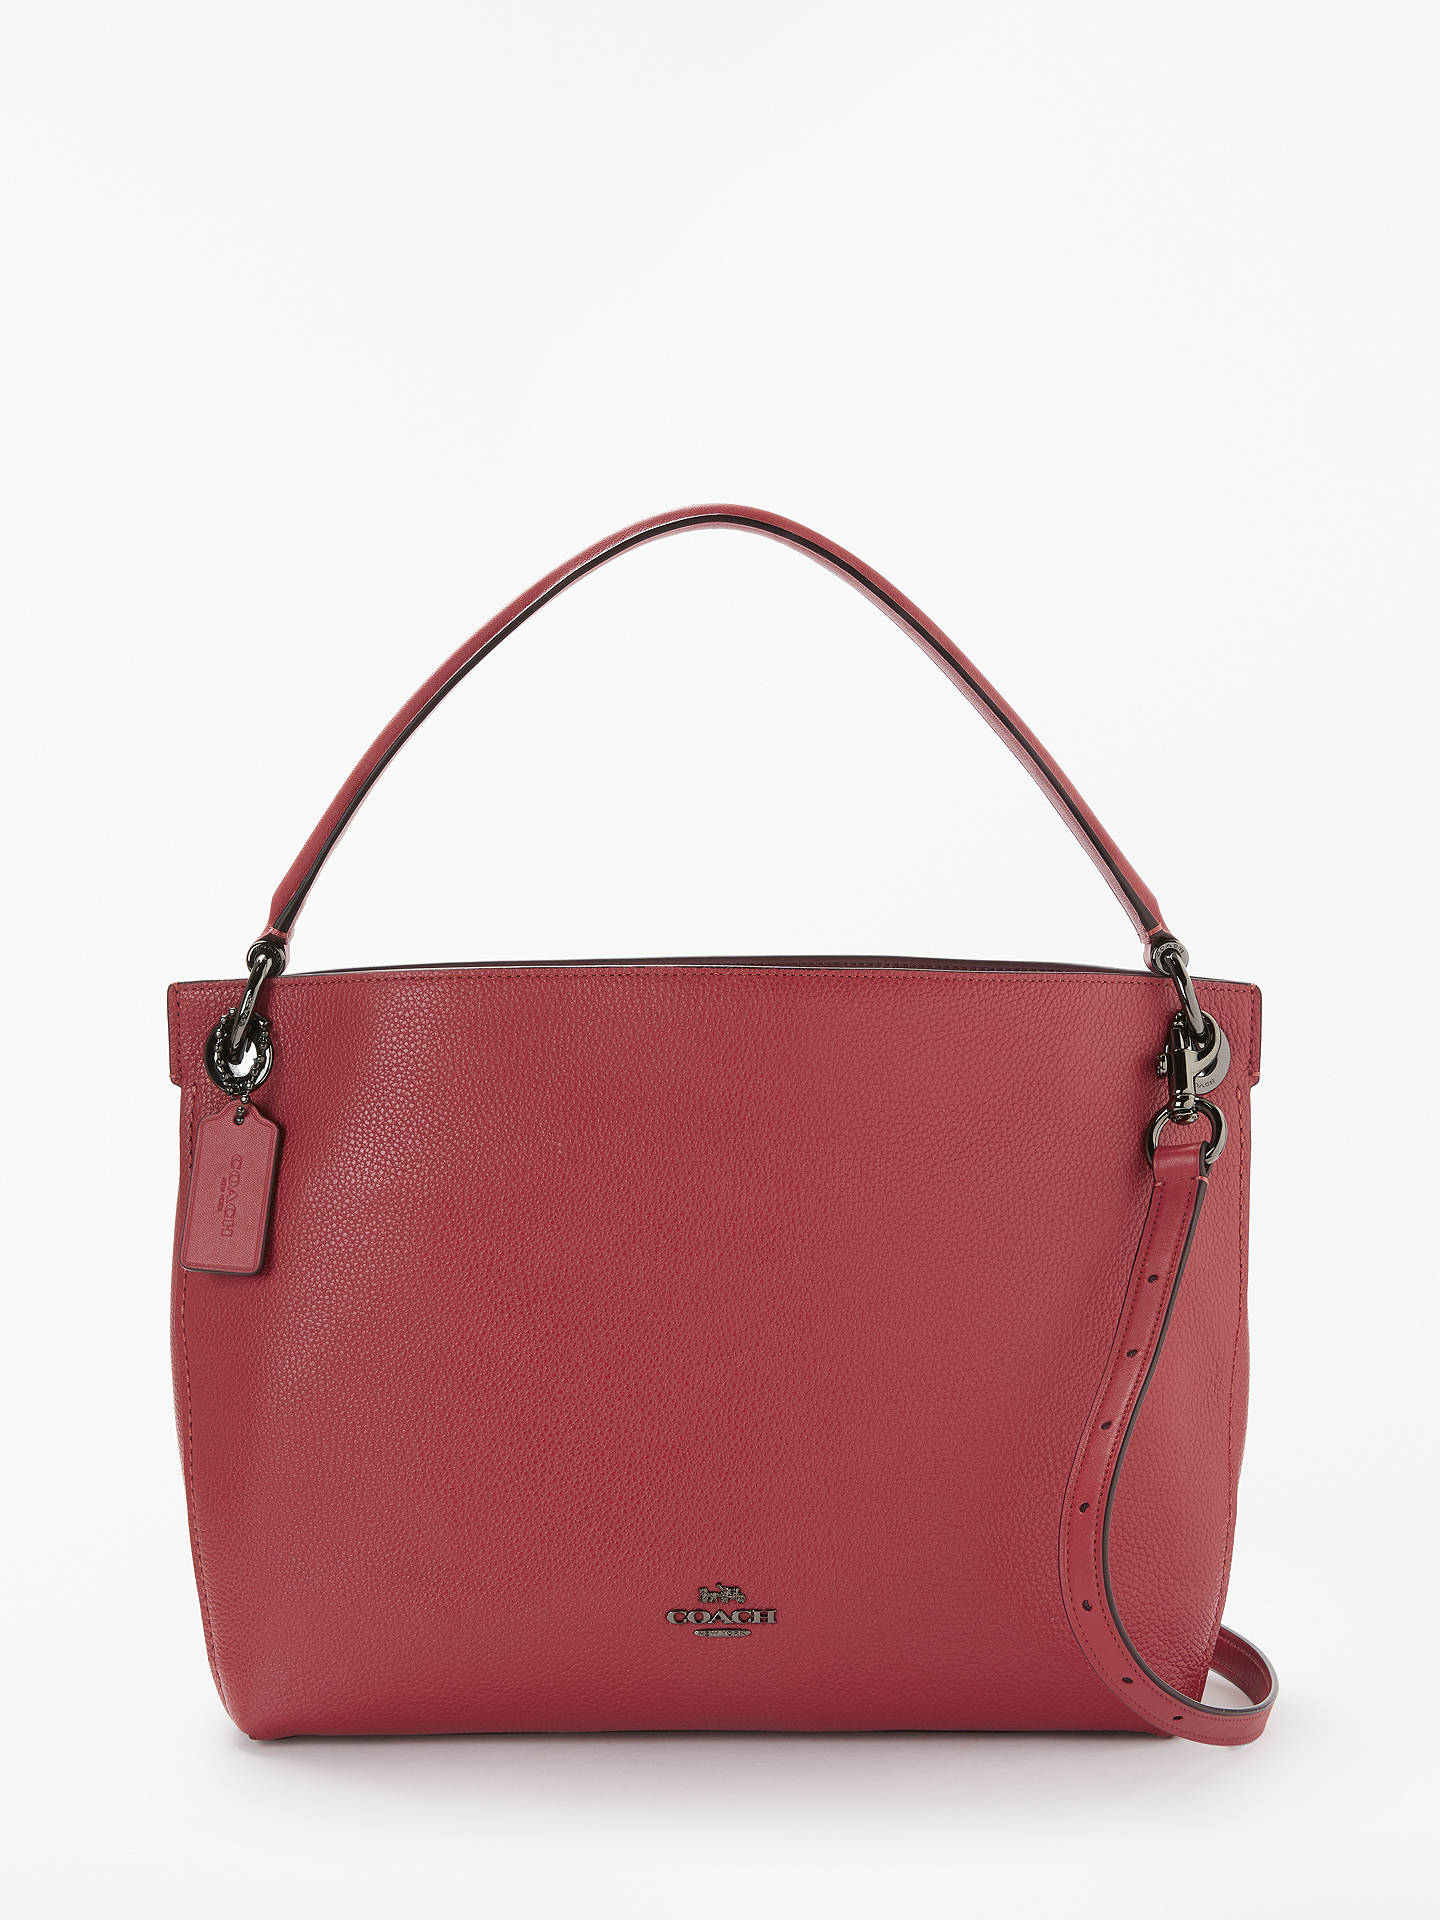 2f5f47eafe07 Coach Clarkson Leather Hobo Bag at John Lewis   Partners